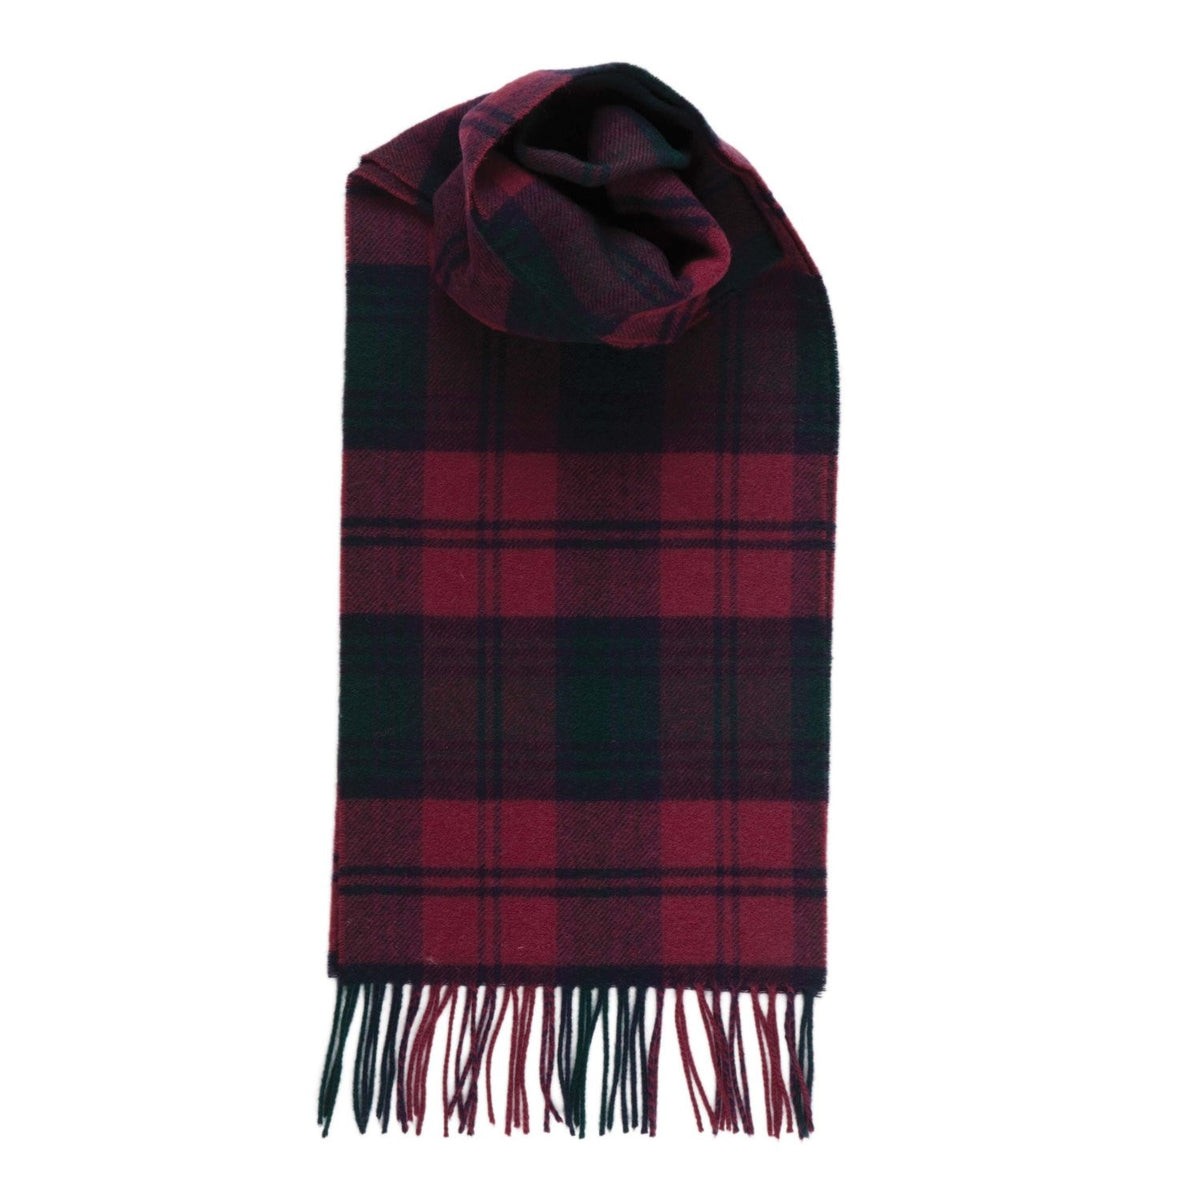 Johnsons of Elgin | Lindsay Tartan Check Cashmere Scarf | buy at The Cashmere Choice | London